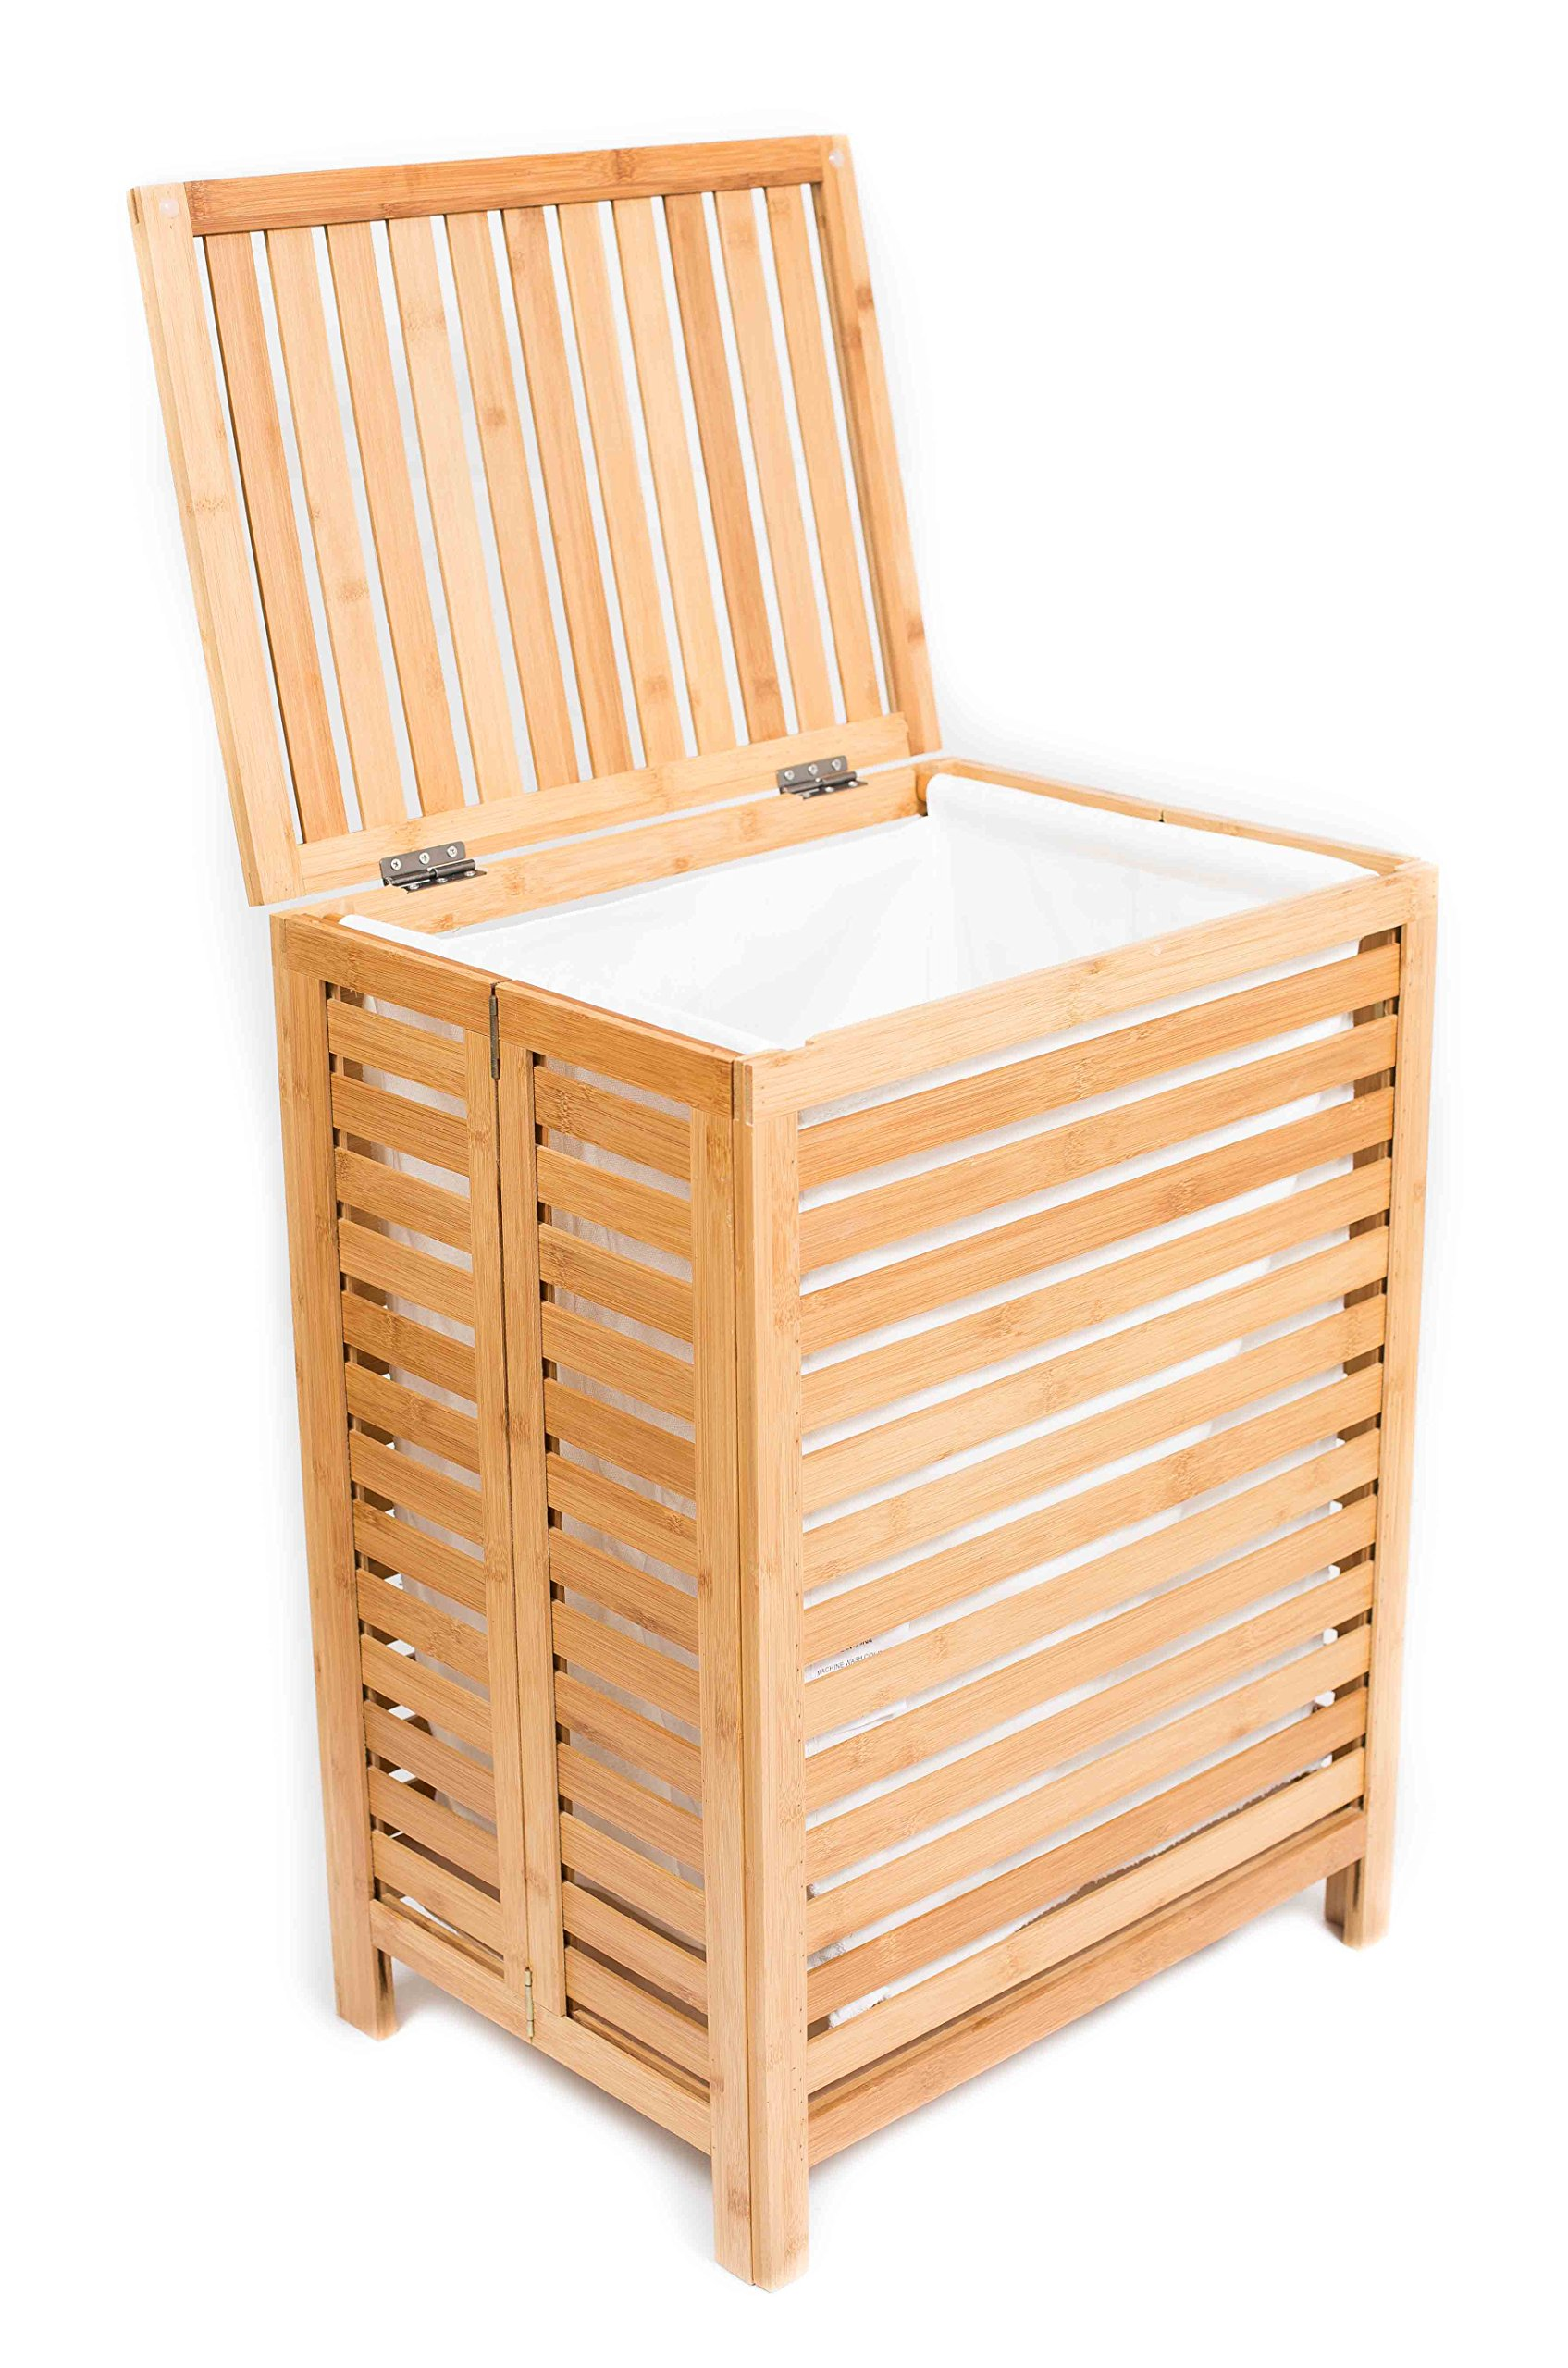 BirdRock Home Folding Bamboo Hamper | Made Natural Bamboo | Includes Machine Washable Cotton Canvas Liner